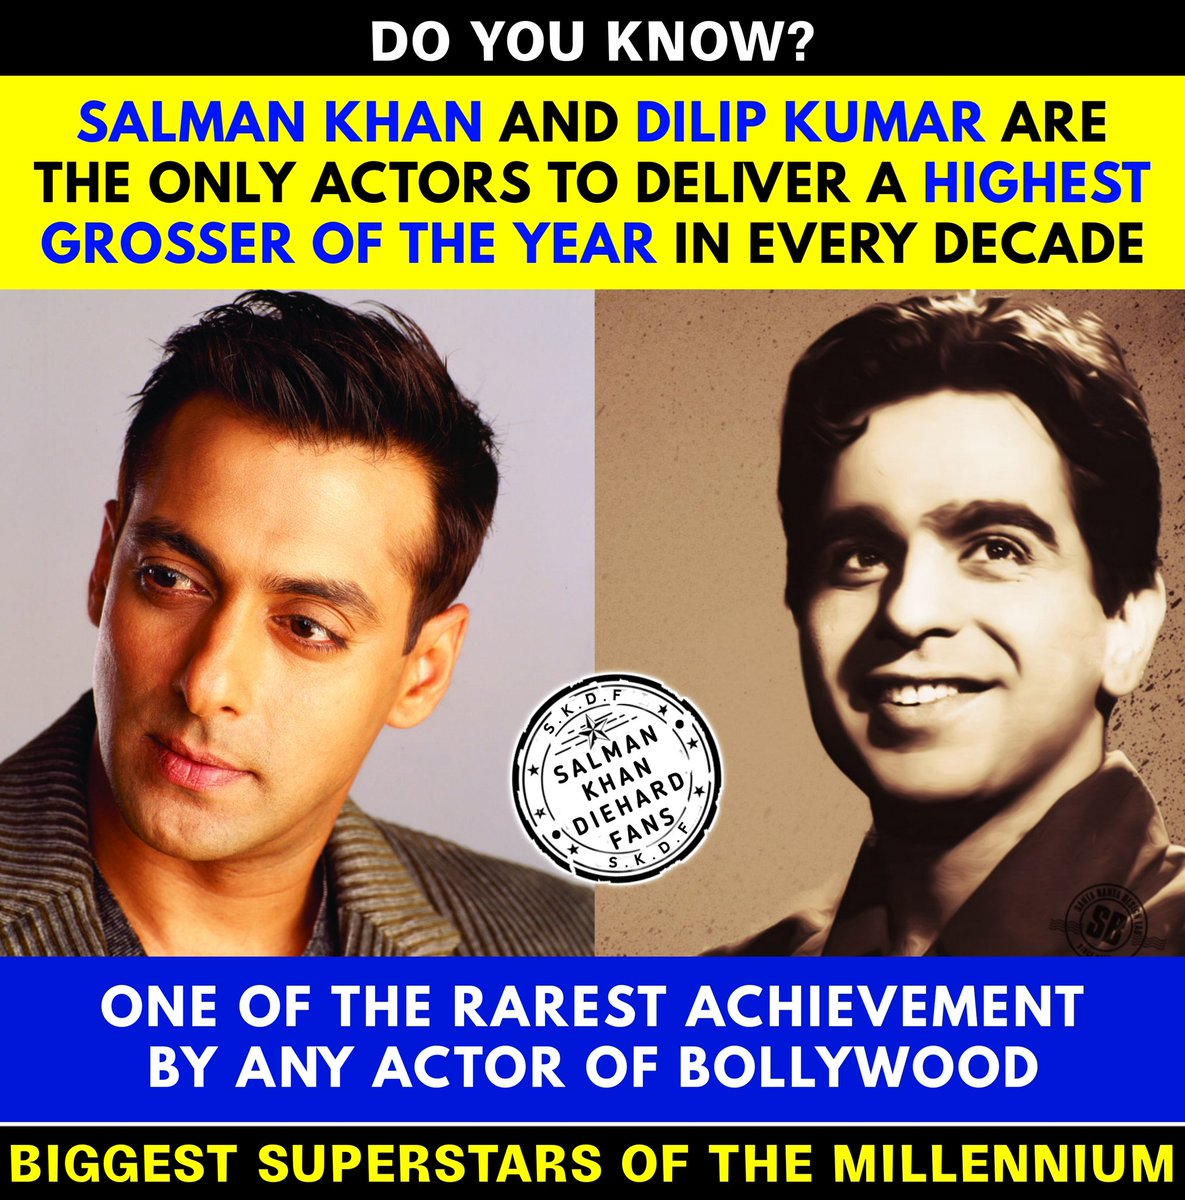 Do You Know. . . . #SalmanKhan and #DilipKumar are The Only Actors To Deliver a Highest Grosser Of The Year in Every Decade. . . . One of the rarest achievement by any actor of Bollywood ✨✨✨✨ Biggest Superstars Of The Millennium 💘